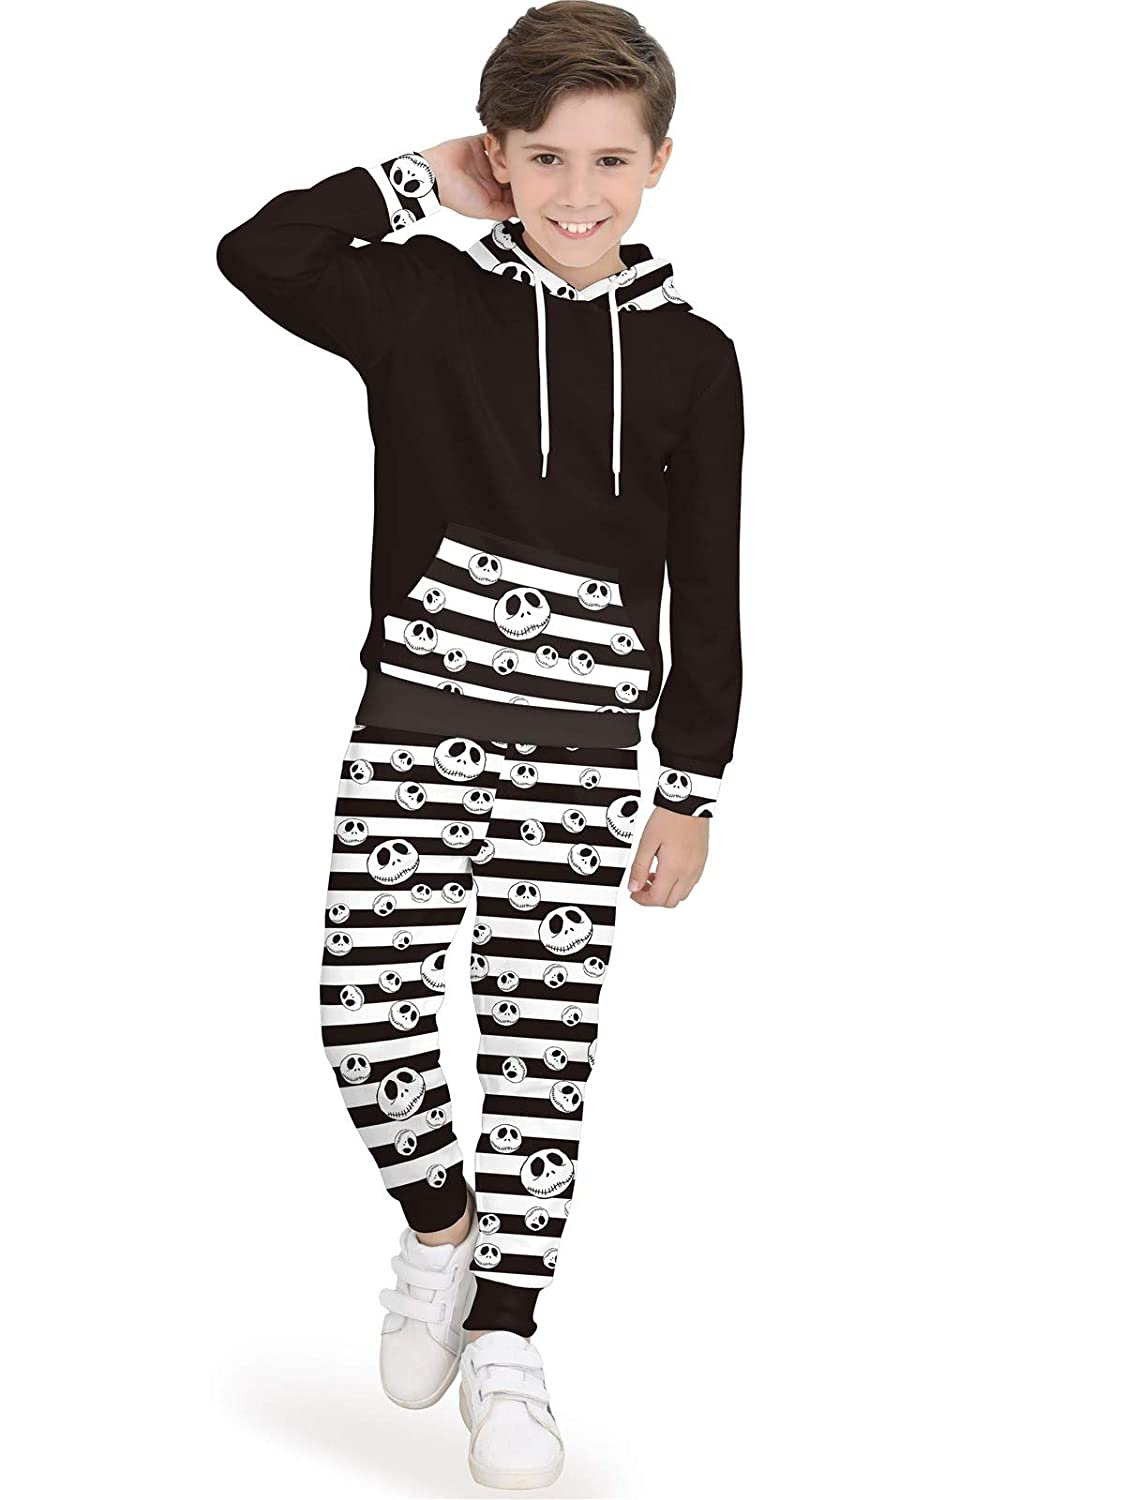 BesserBay Unisex Kids' Halloween Costume Hoodie Pants Set Front Pocket Pullover